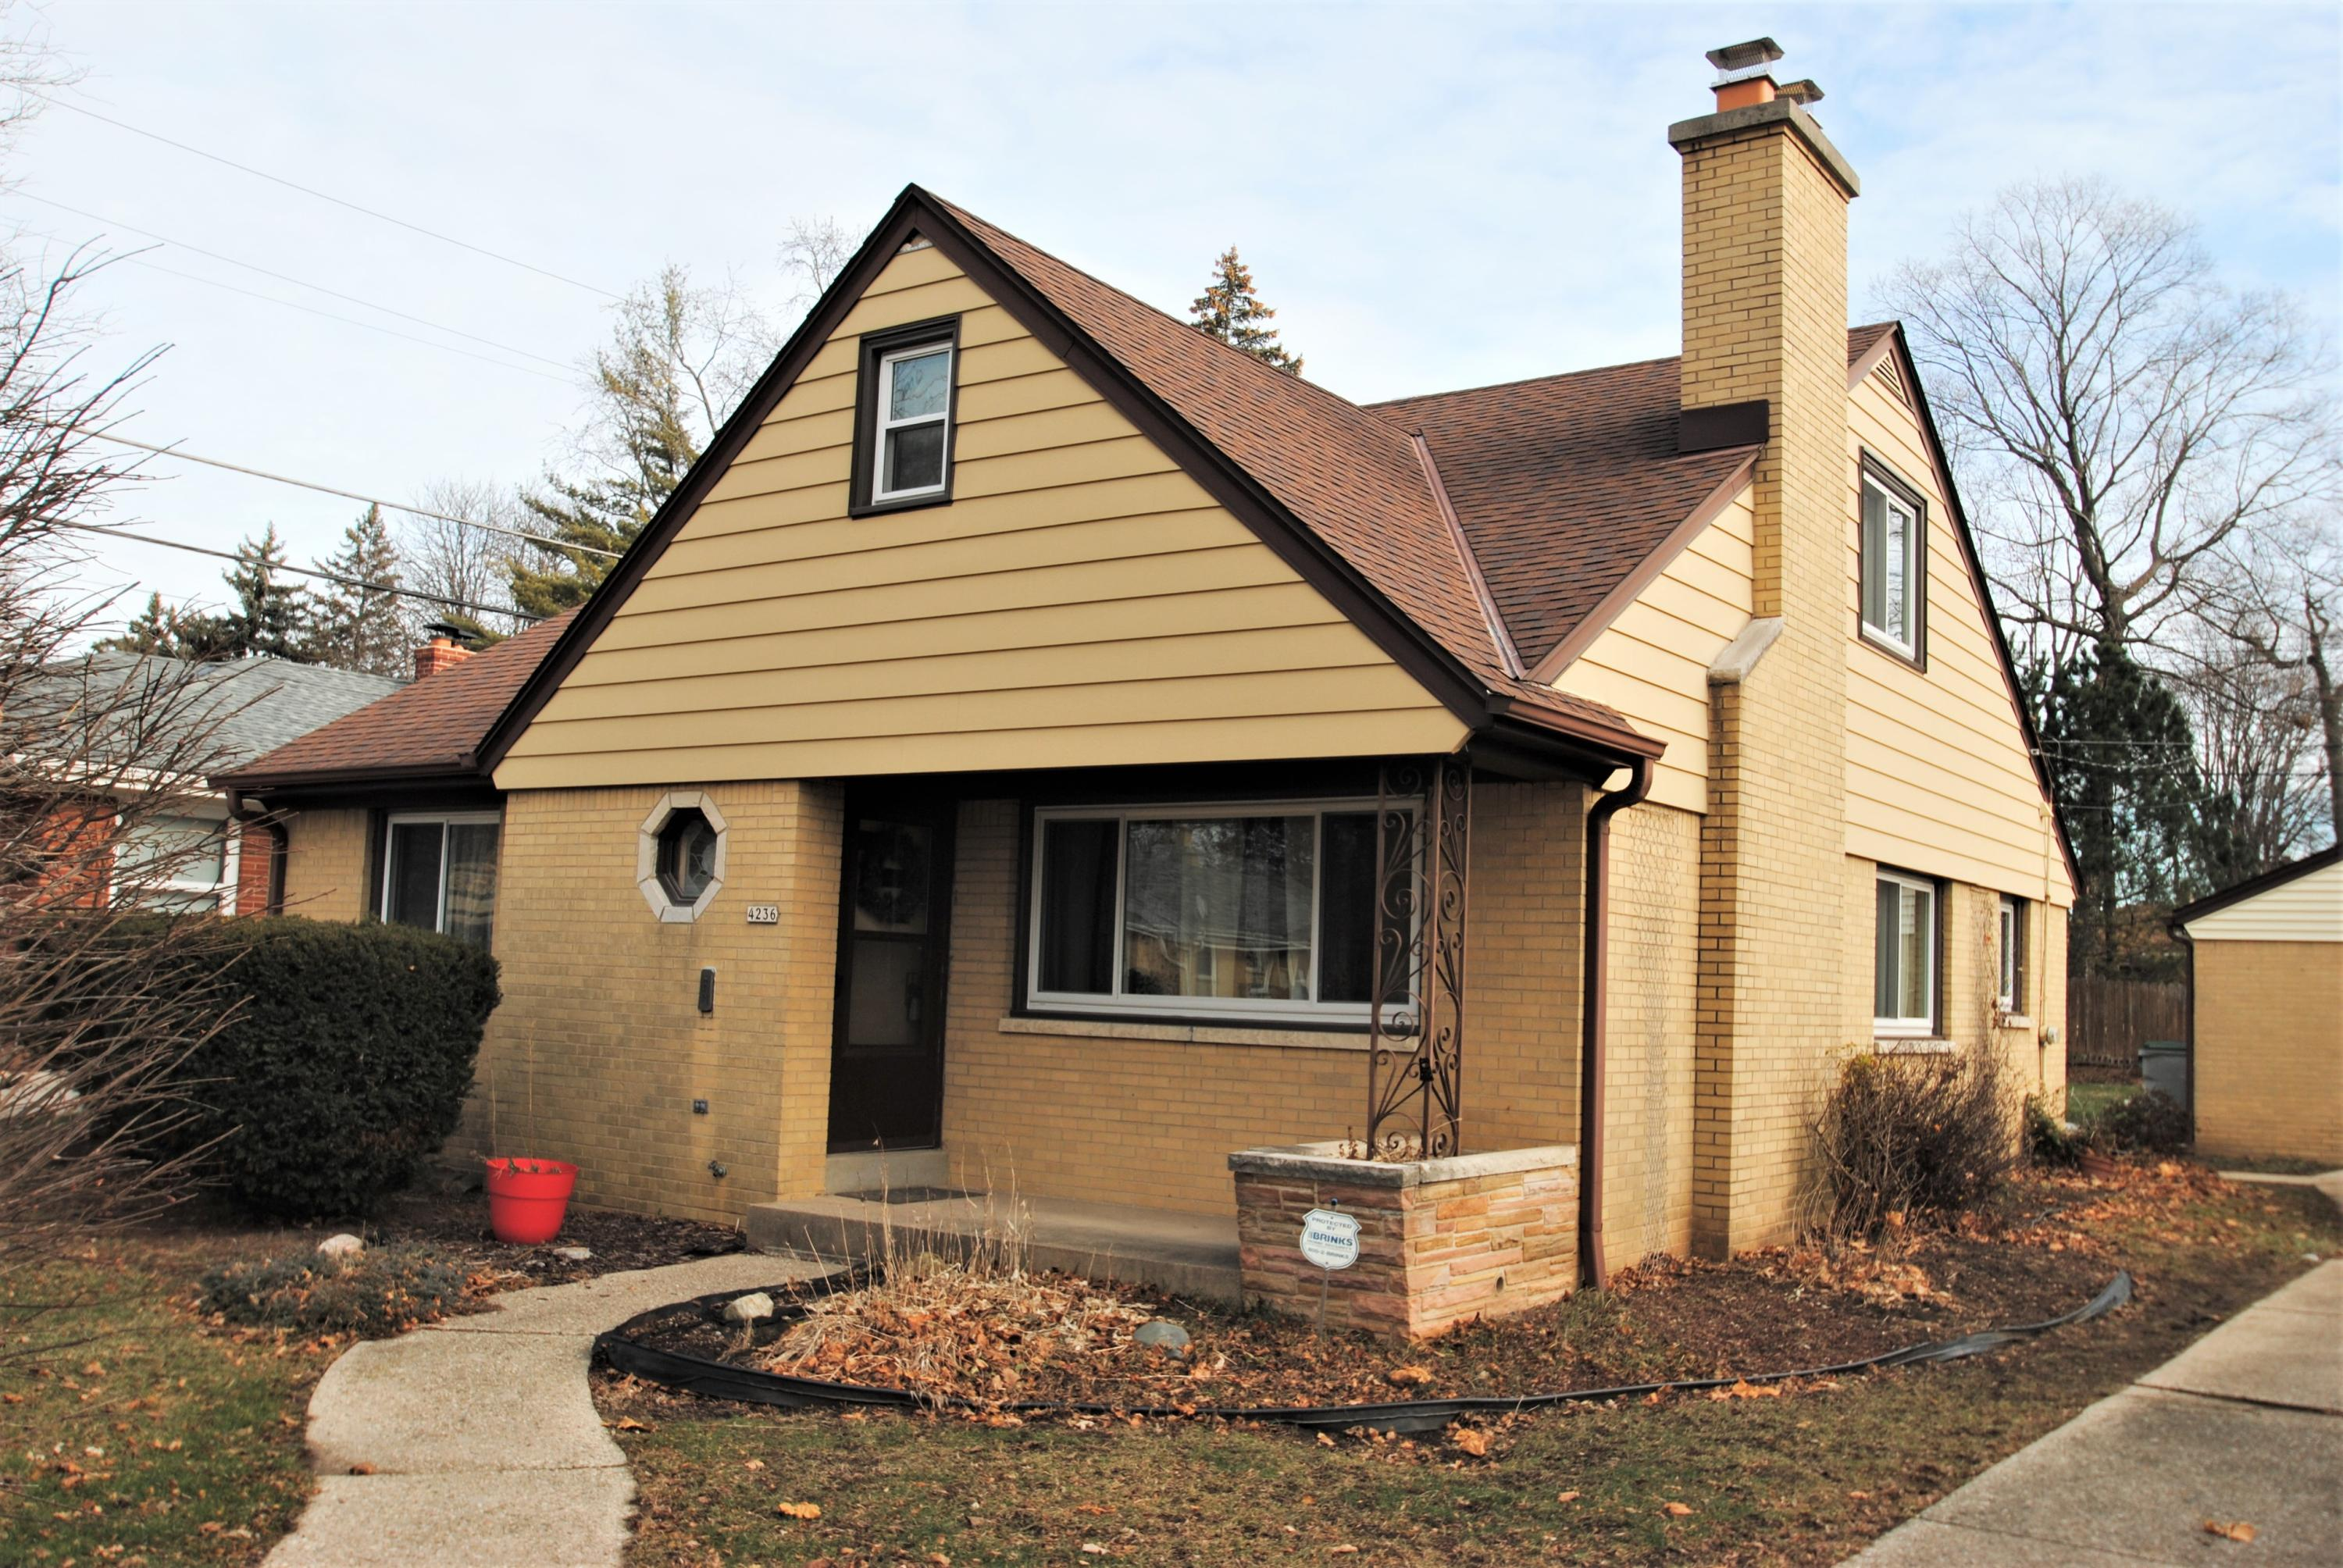 4236 86th St, Milwaukee, Wisconsin 53222, 4 Bedrooms Bedrooms, 8 Rooms Rooms,2 BathroomsBathrooms,Single-family,For Sale,86th St,1722358